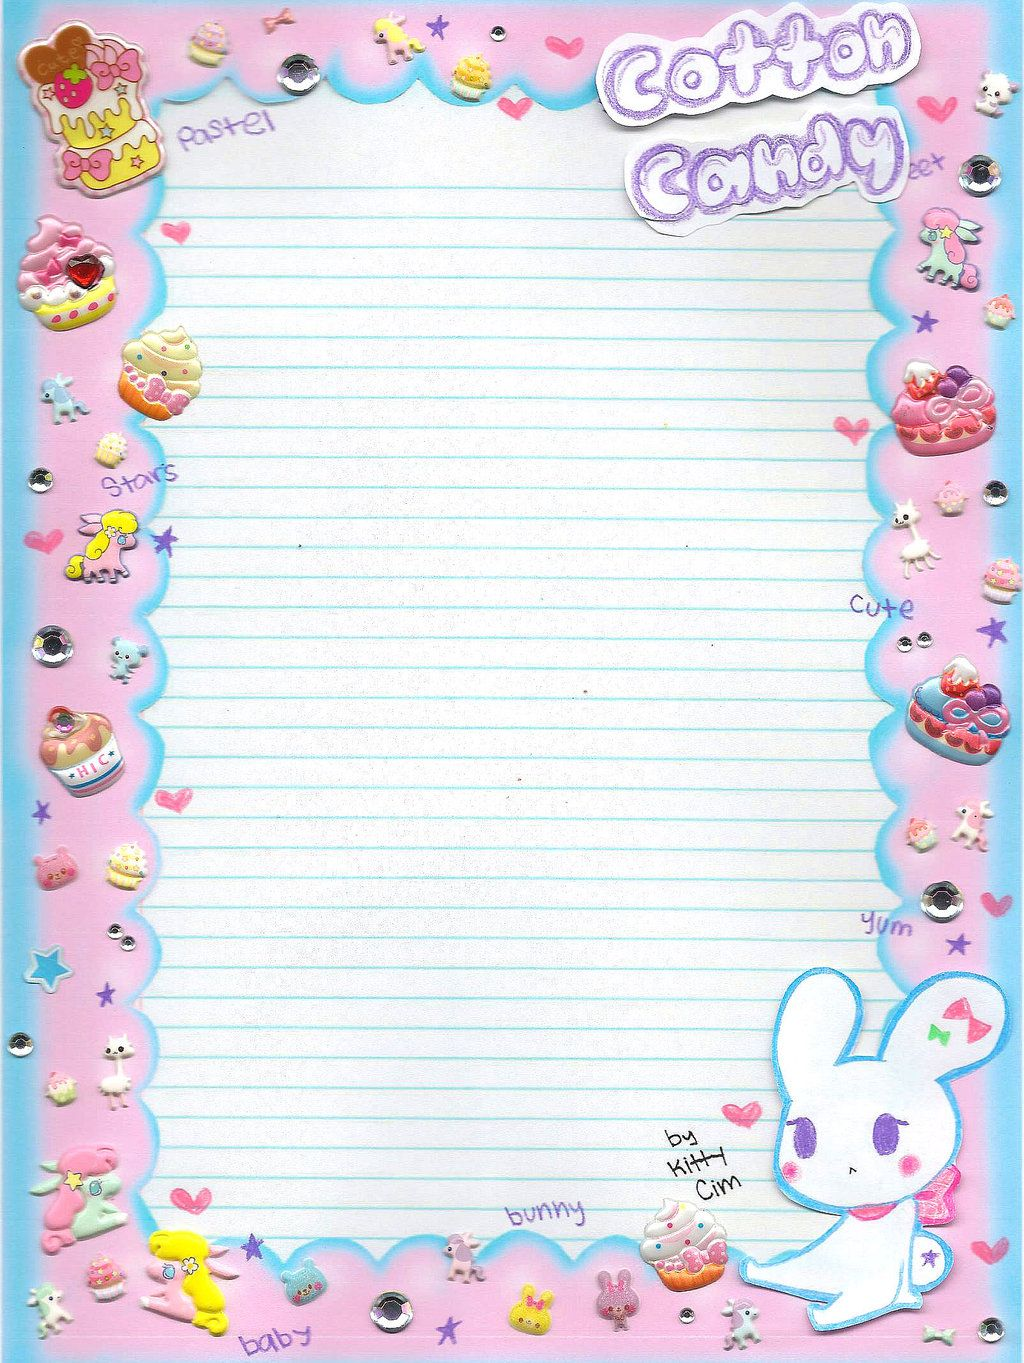 Cotton Candy Notebook Paper By TheundertakerskittyDeviantartCom